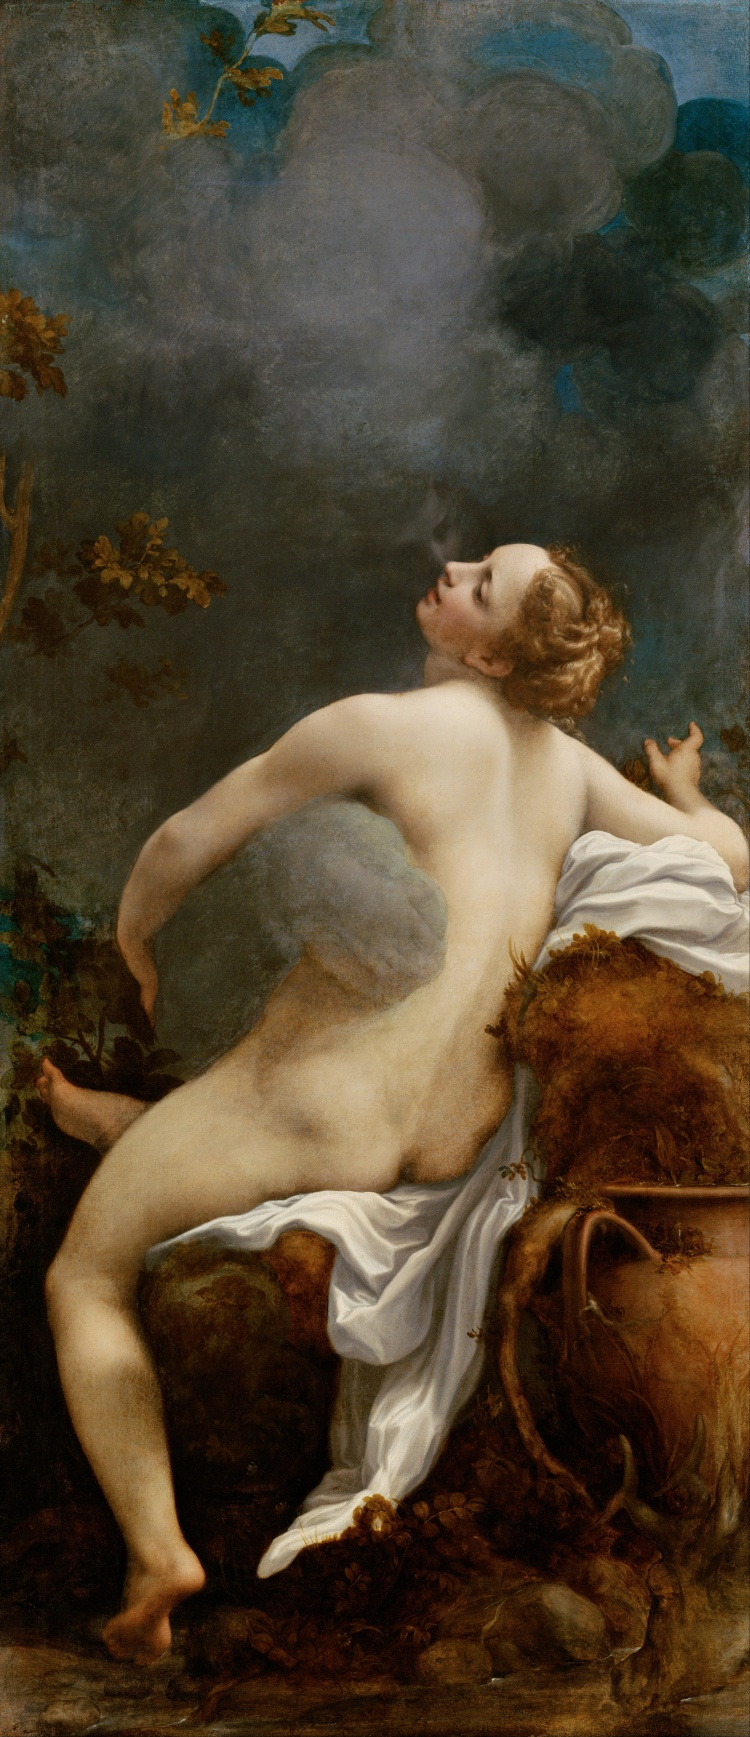 Antonio_Allegri,_called_Correggio_-_Jupiter_and_Io